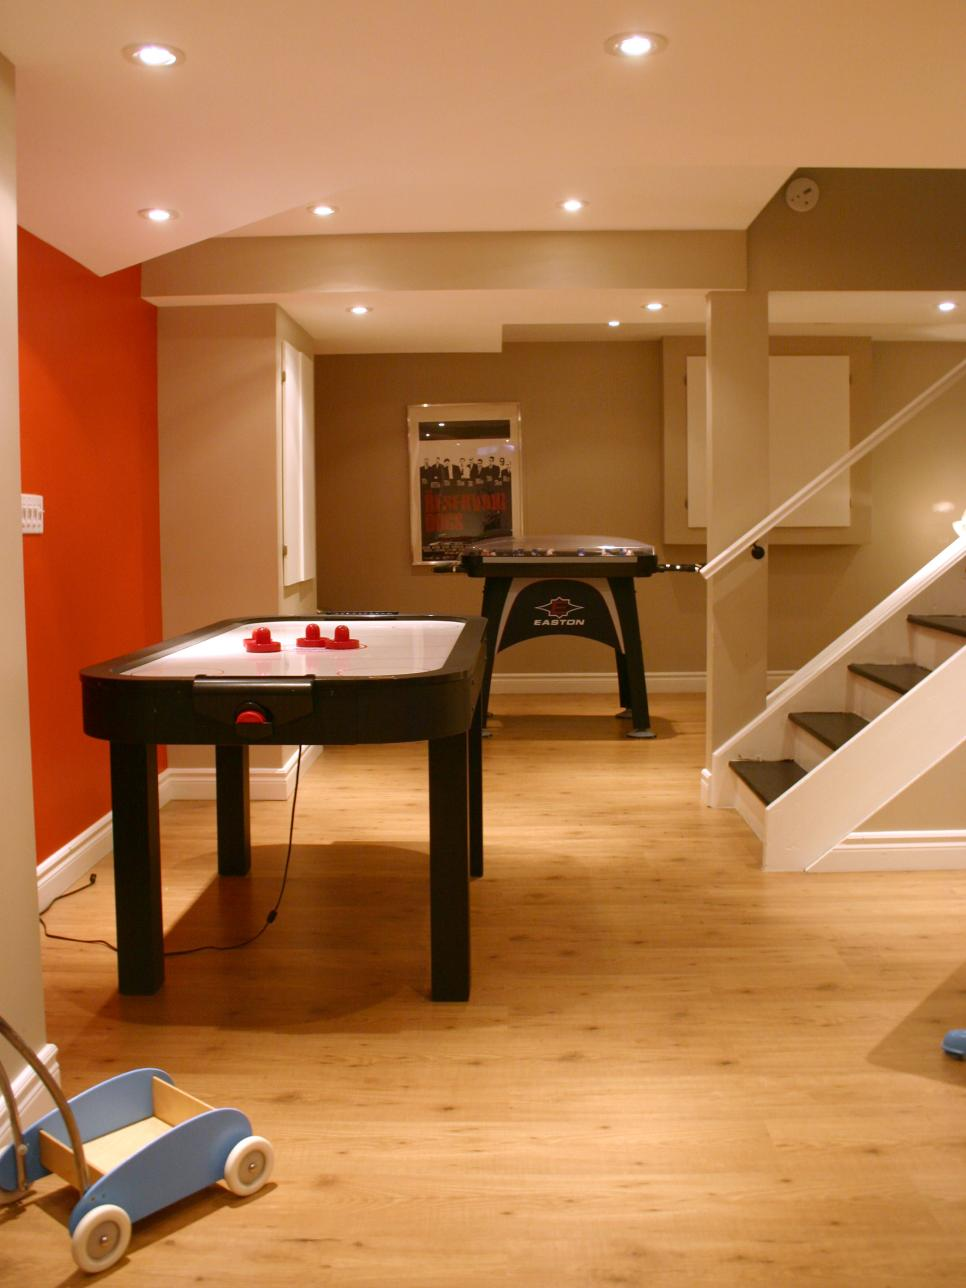 Basement design ideas hgtv - Finished basements ideas ...